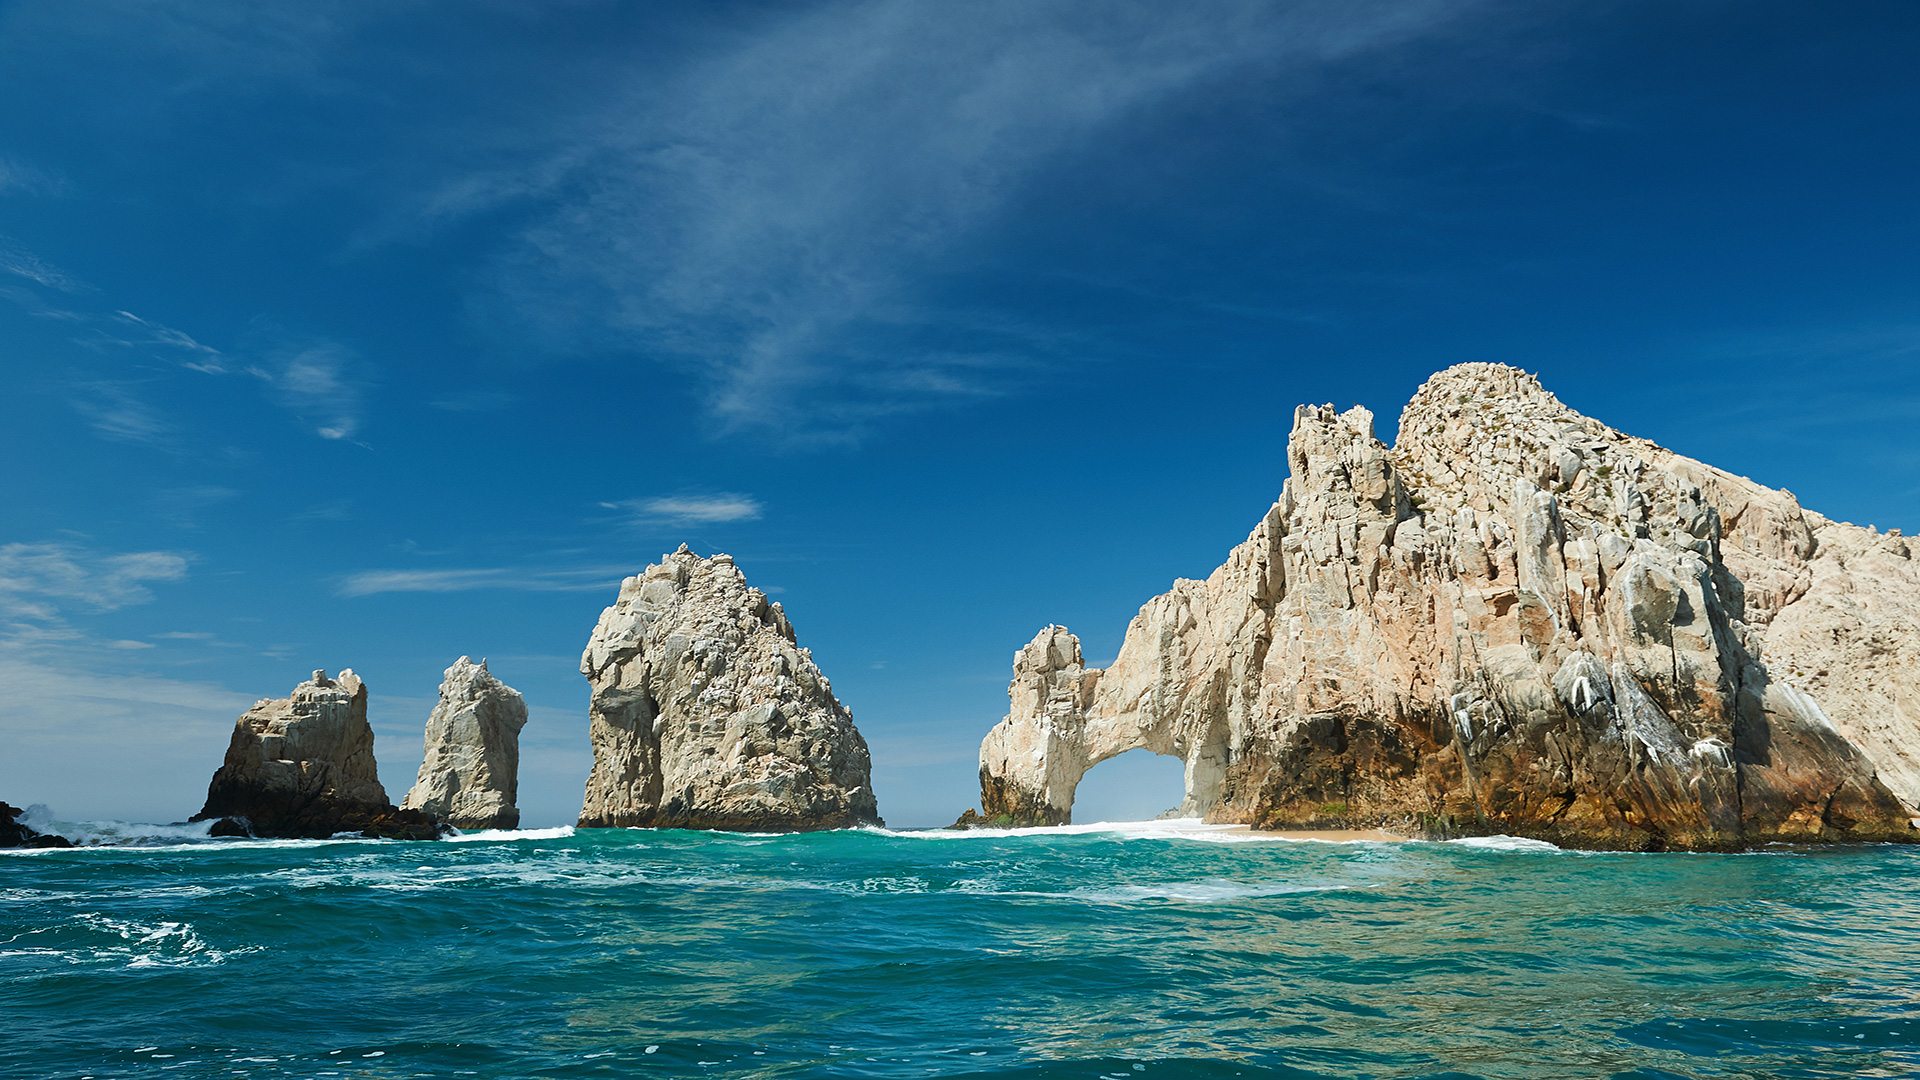 DESTINATION · The Difference Between San Jose del Cabo and Cabo San Lucas